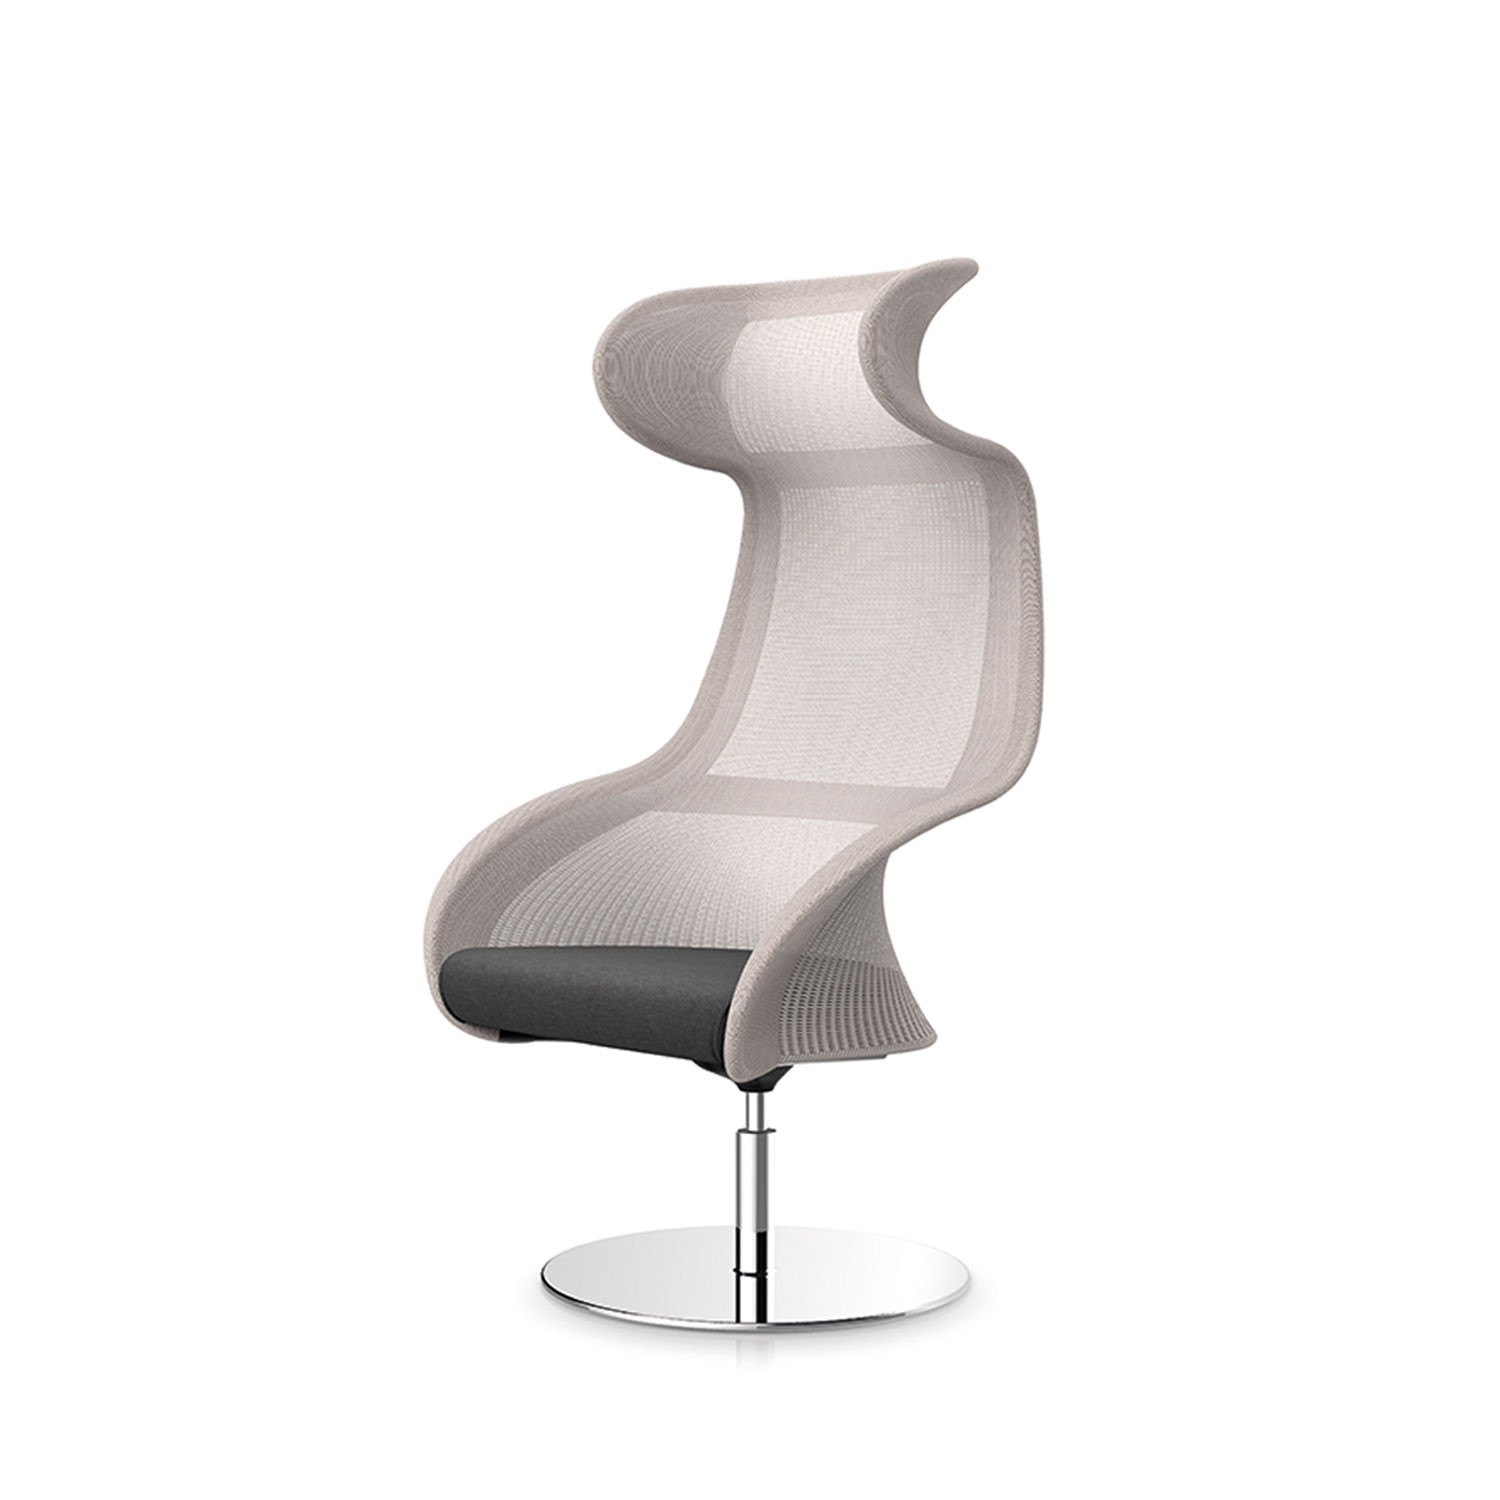 Oasis Office Chair by Martin Ballendat